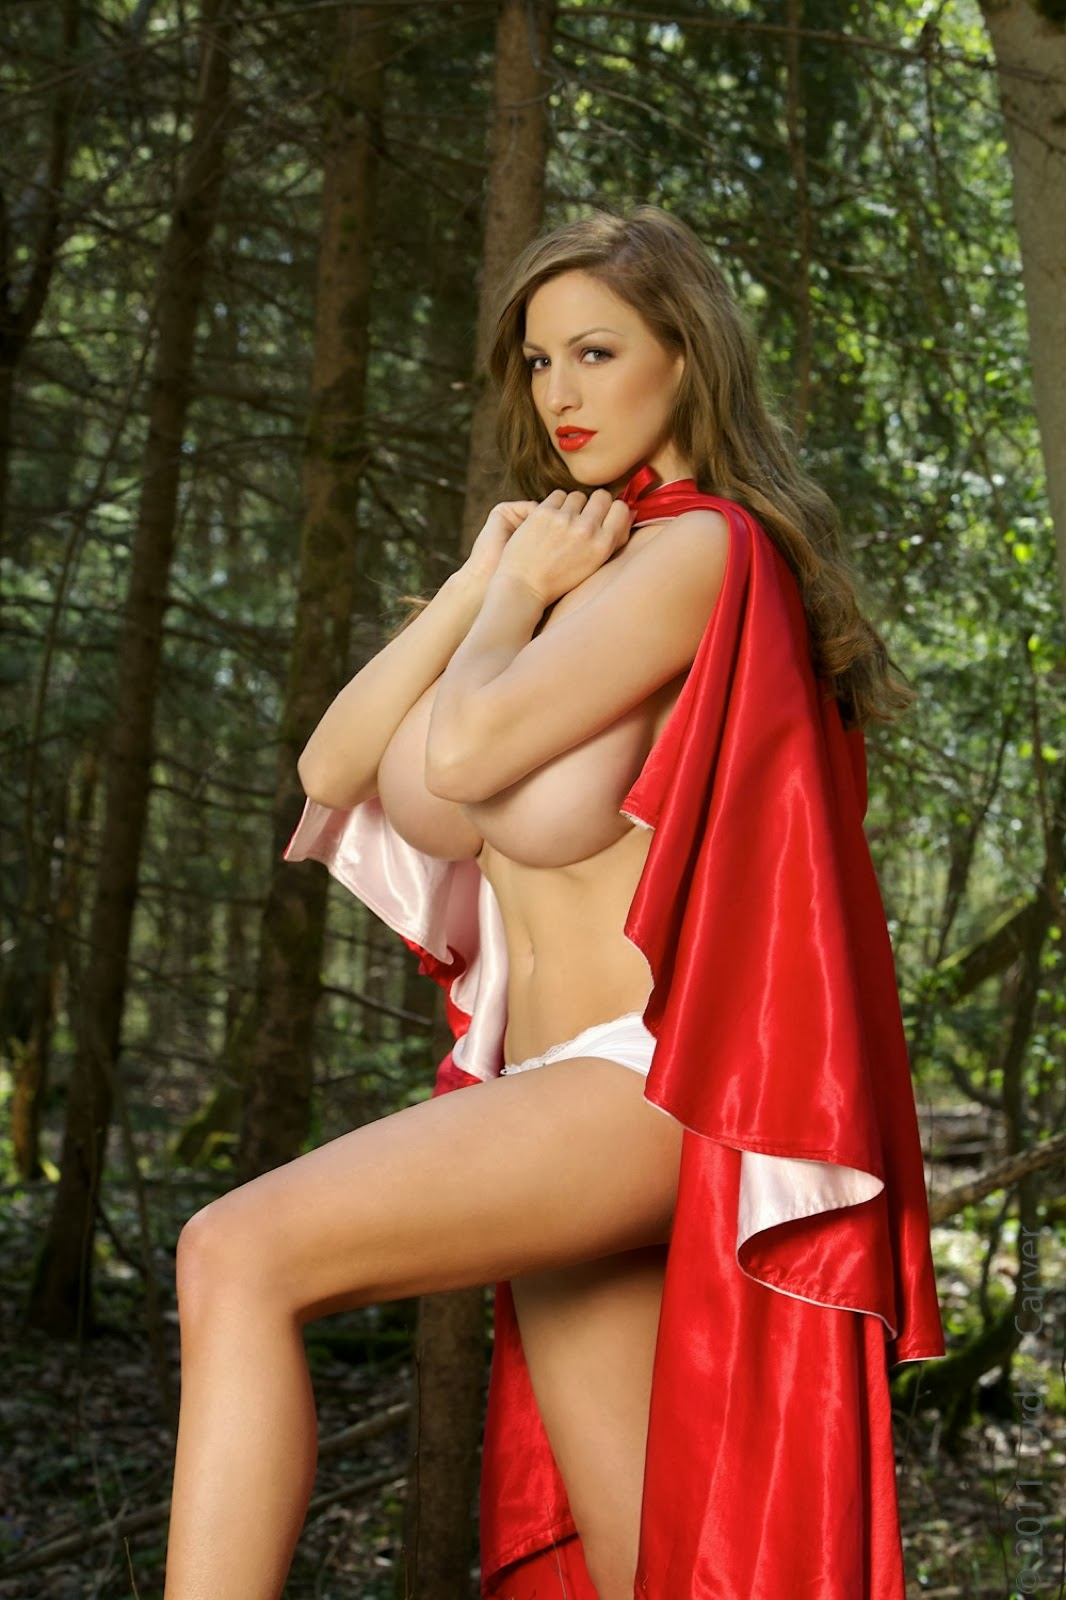 Little red riding ho nude agree